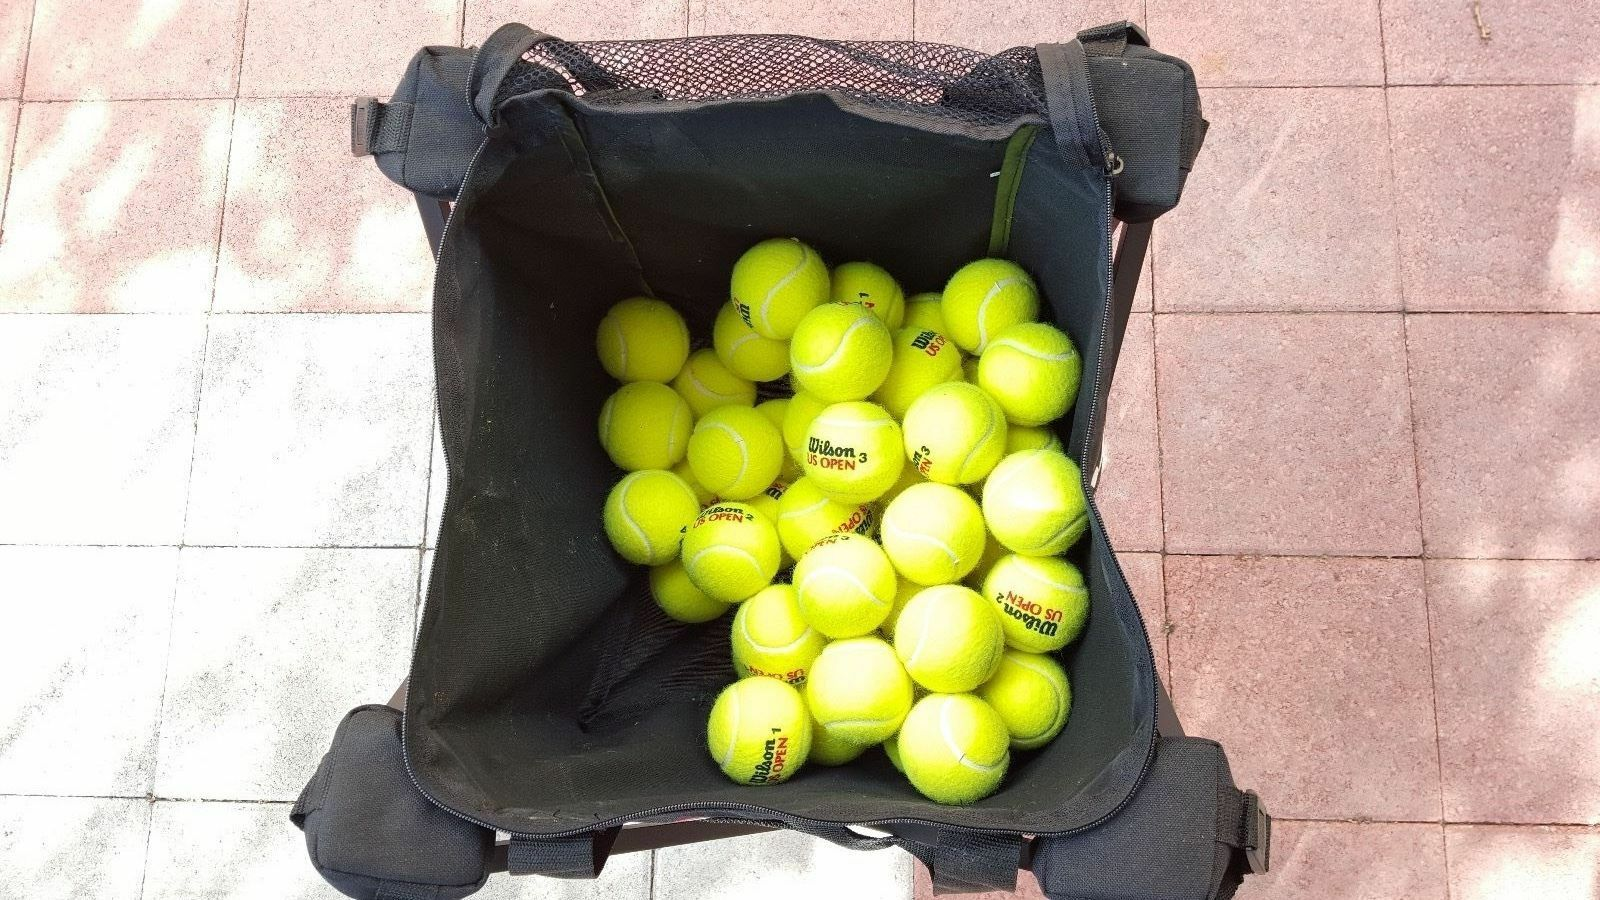 70 70 70 US OPEN WILSON Used Tennis Balls LOT fb41d1